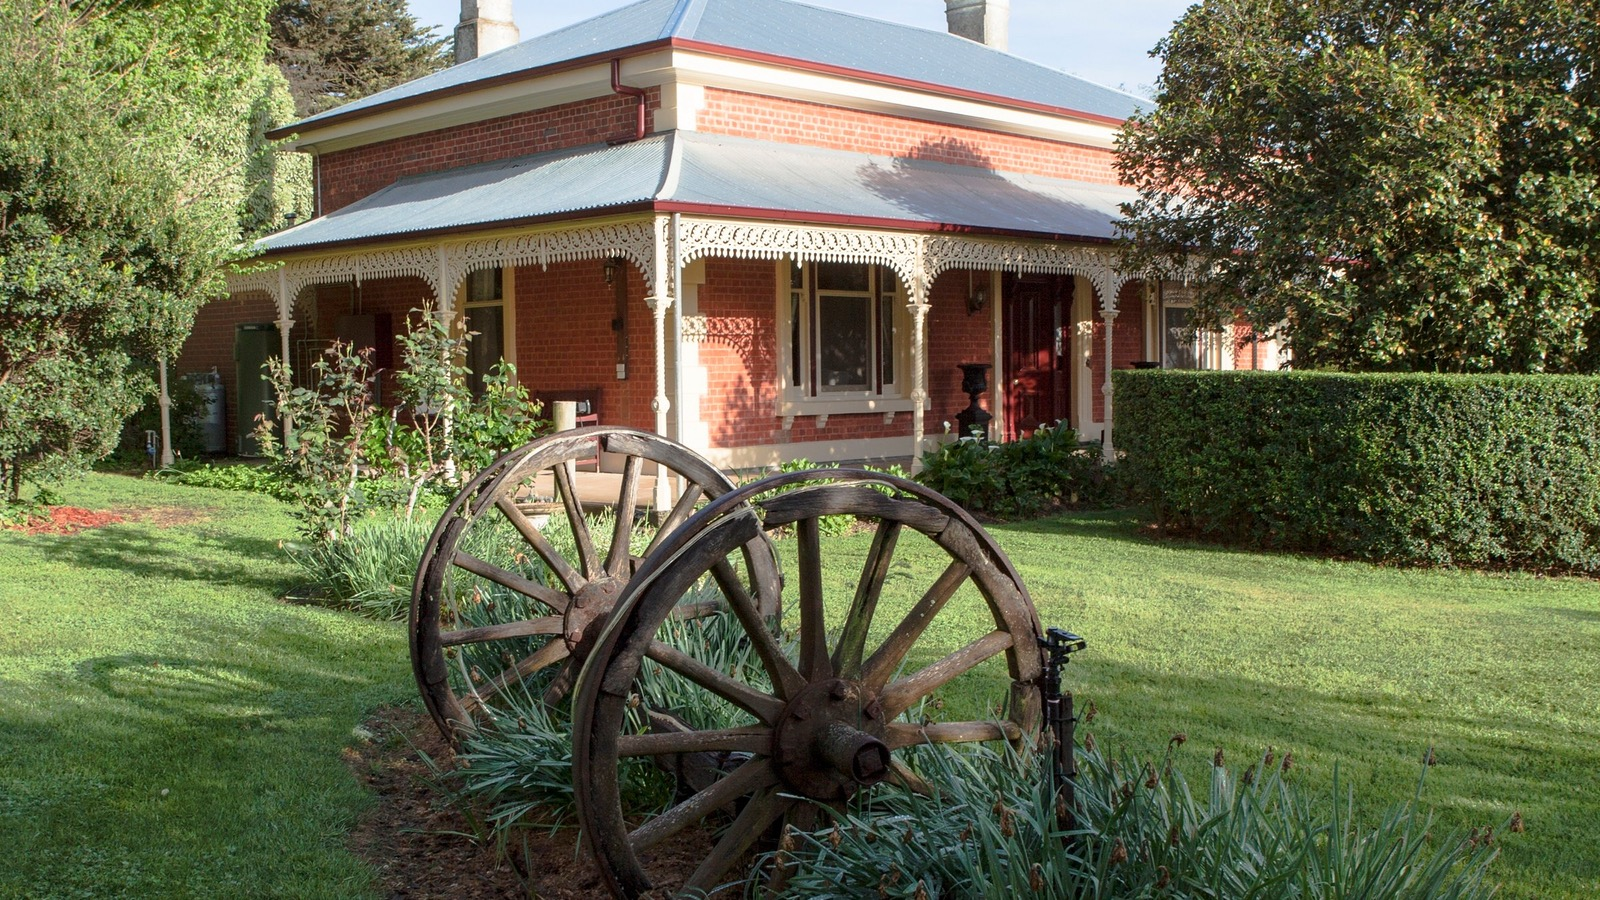 The Parkside homestead built in 1890's